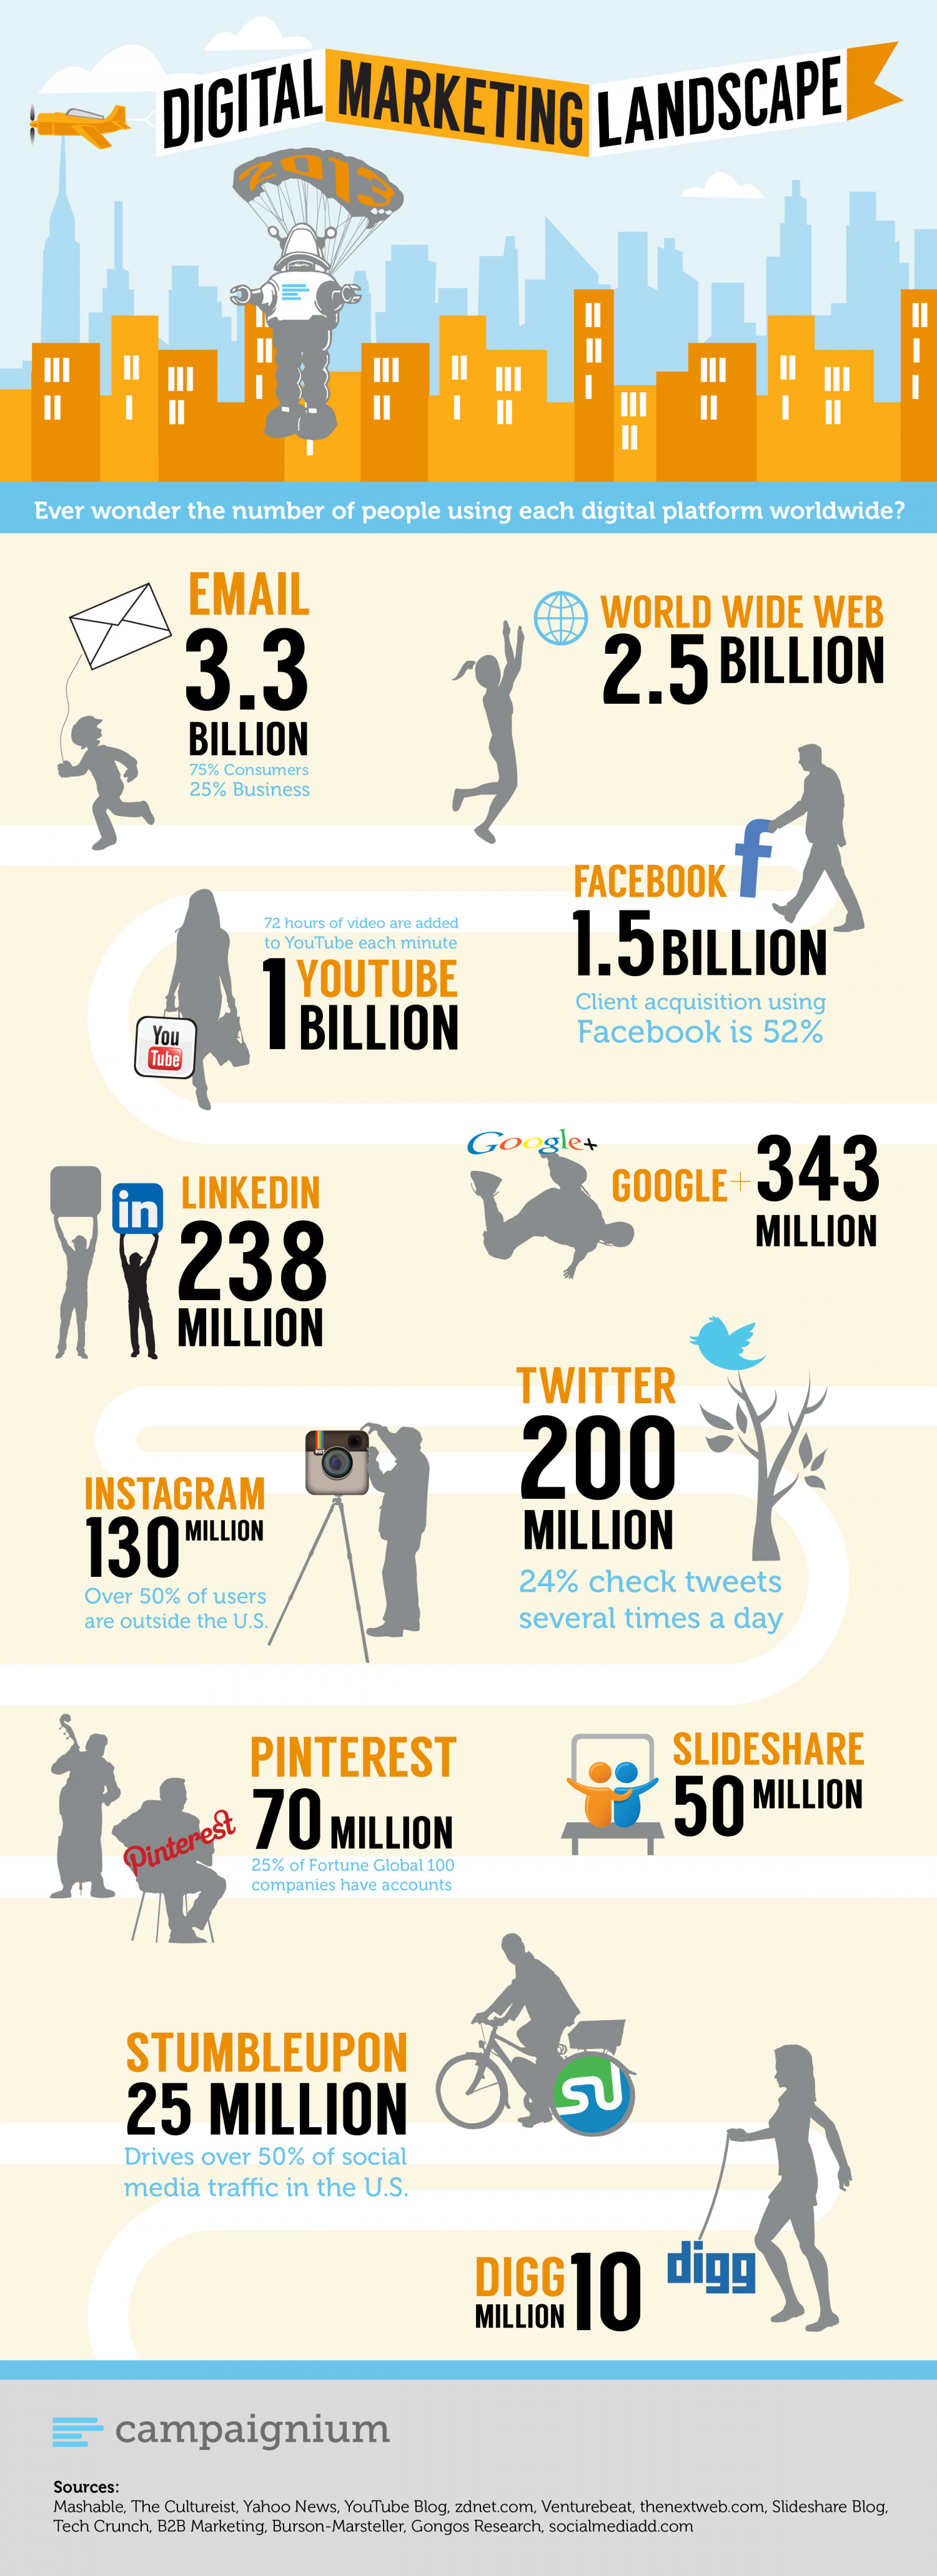 Digital Marketing Landscape Infographic